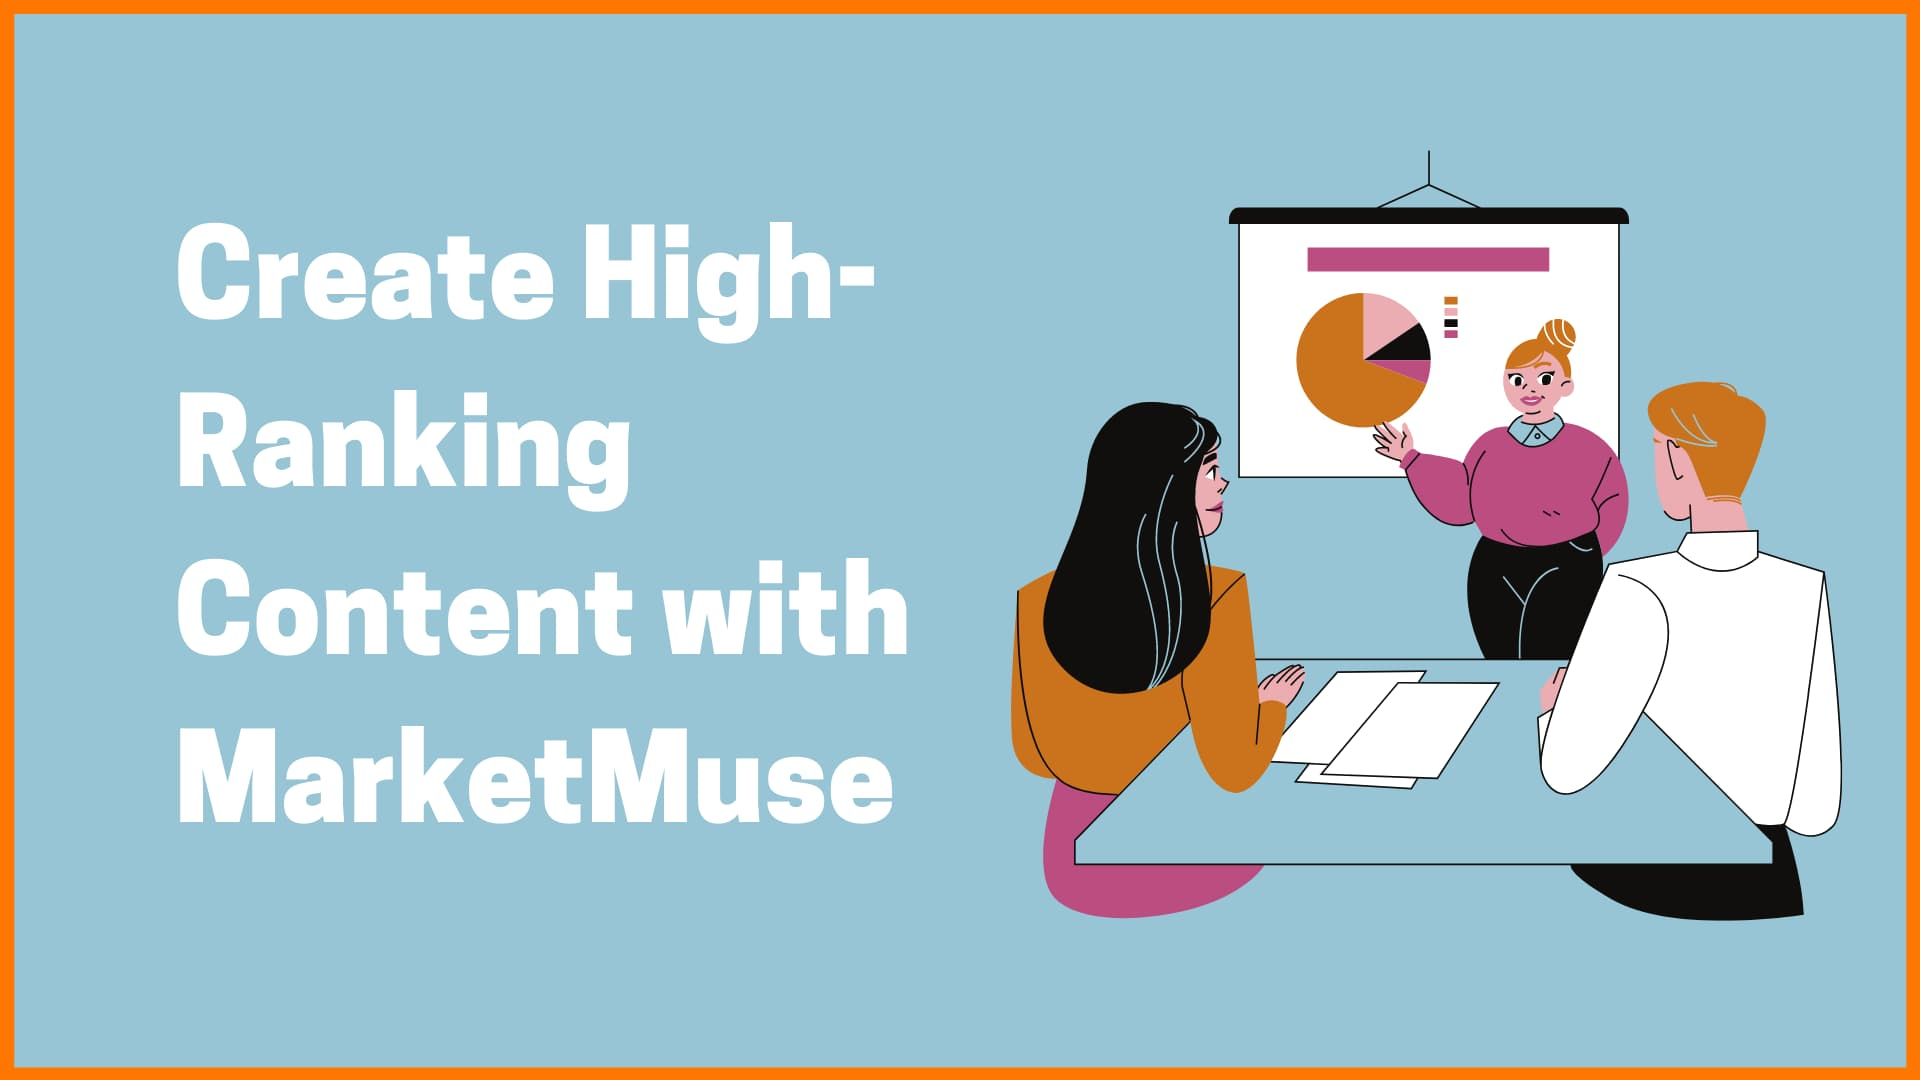 Create High-Ranking Content With MarketMuse